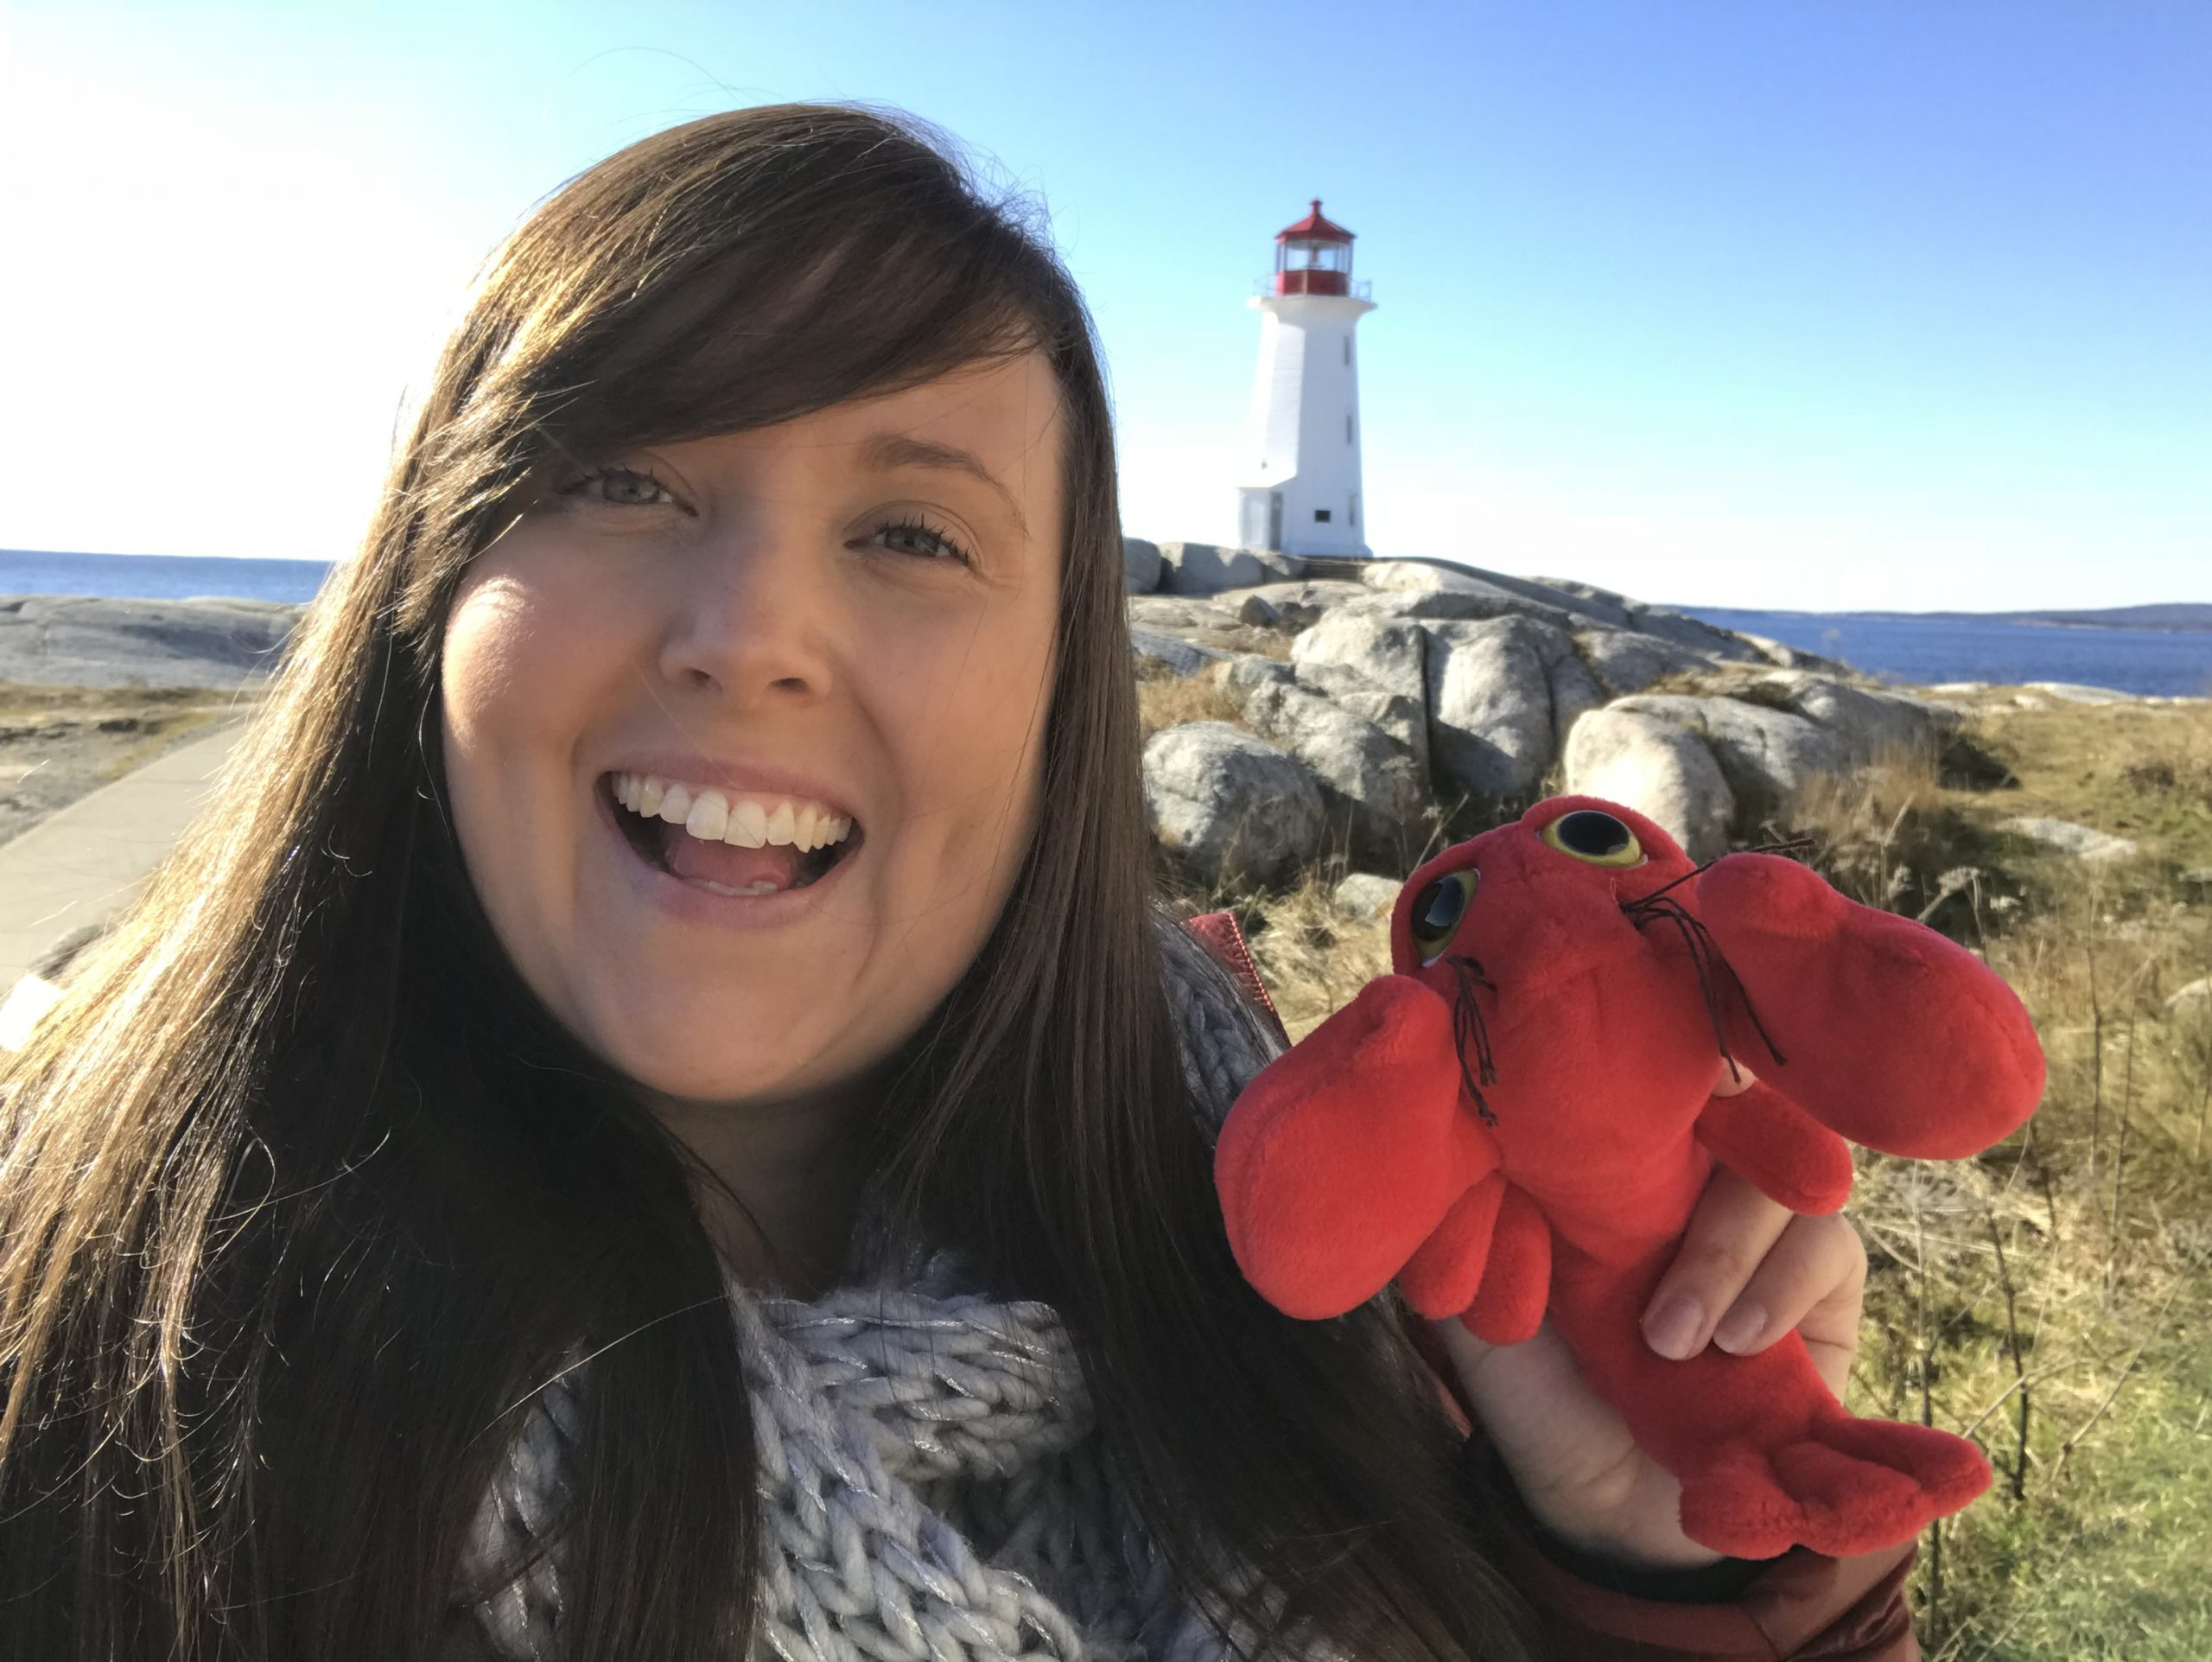 Cailin with a toy lobster at the Peggy's Cove Lighthouse